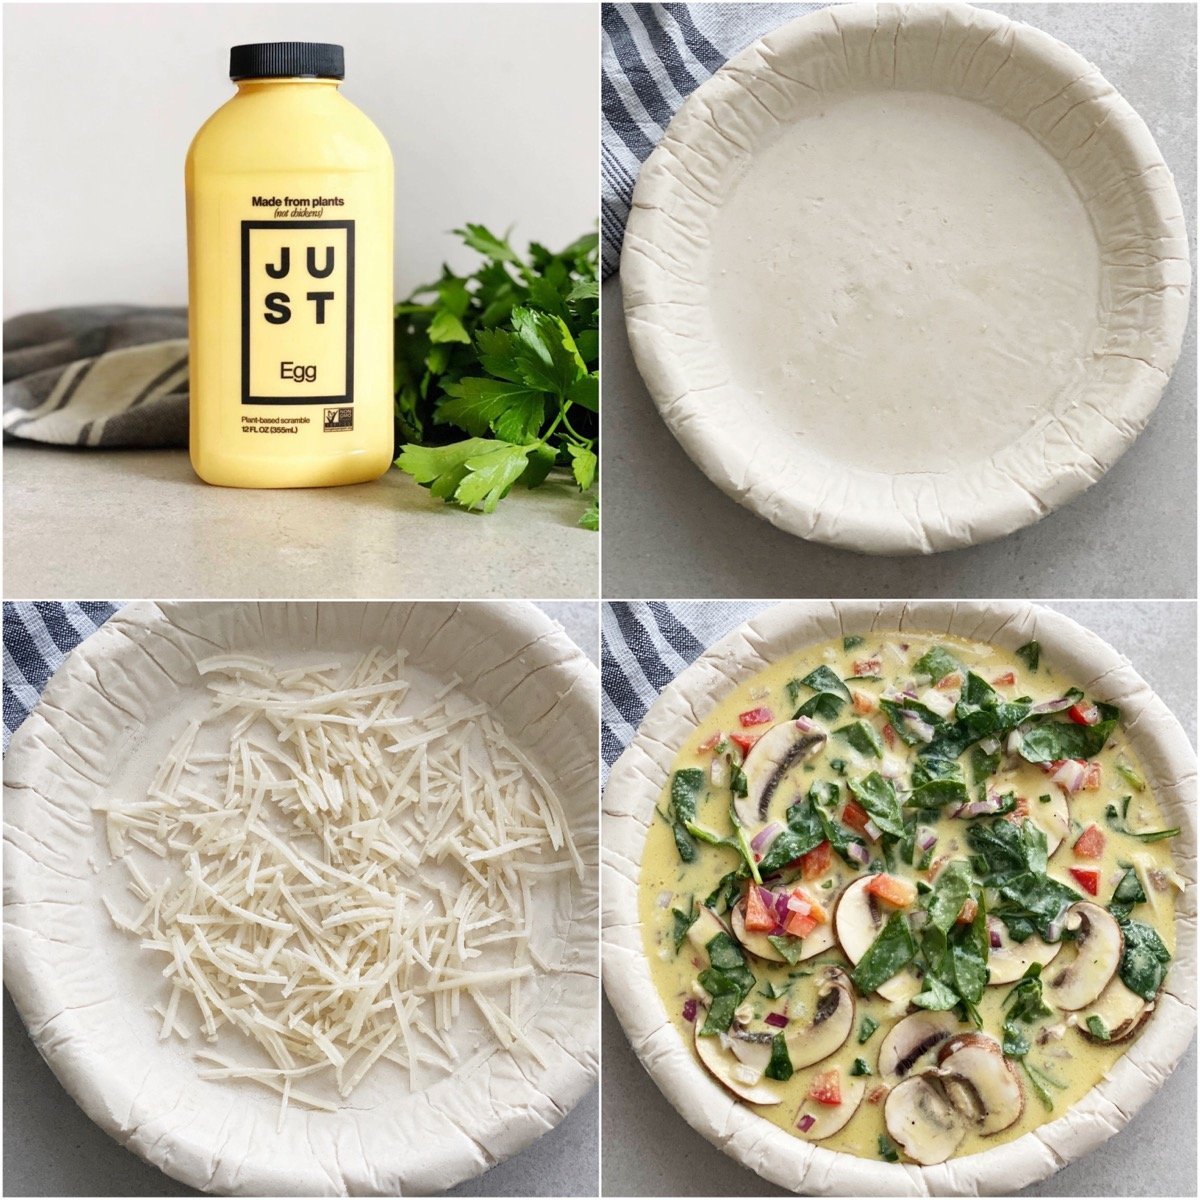 Series of photo showing steps to make vegan quiche